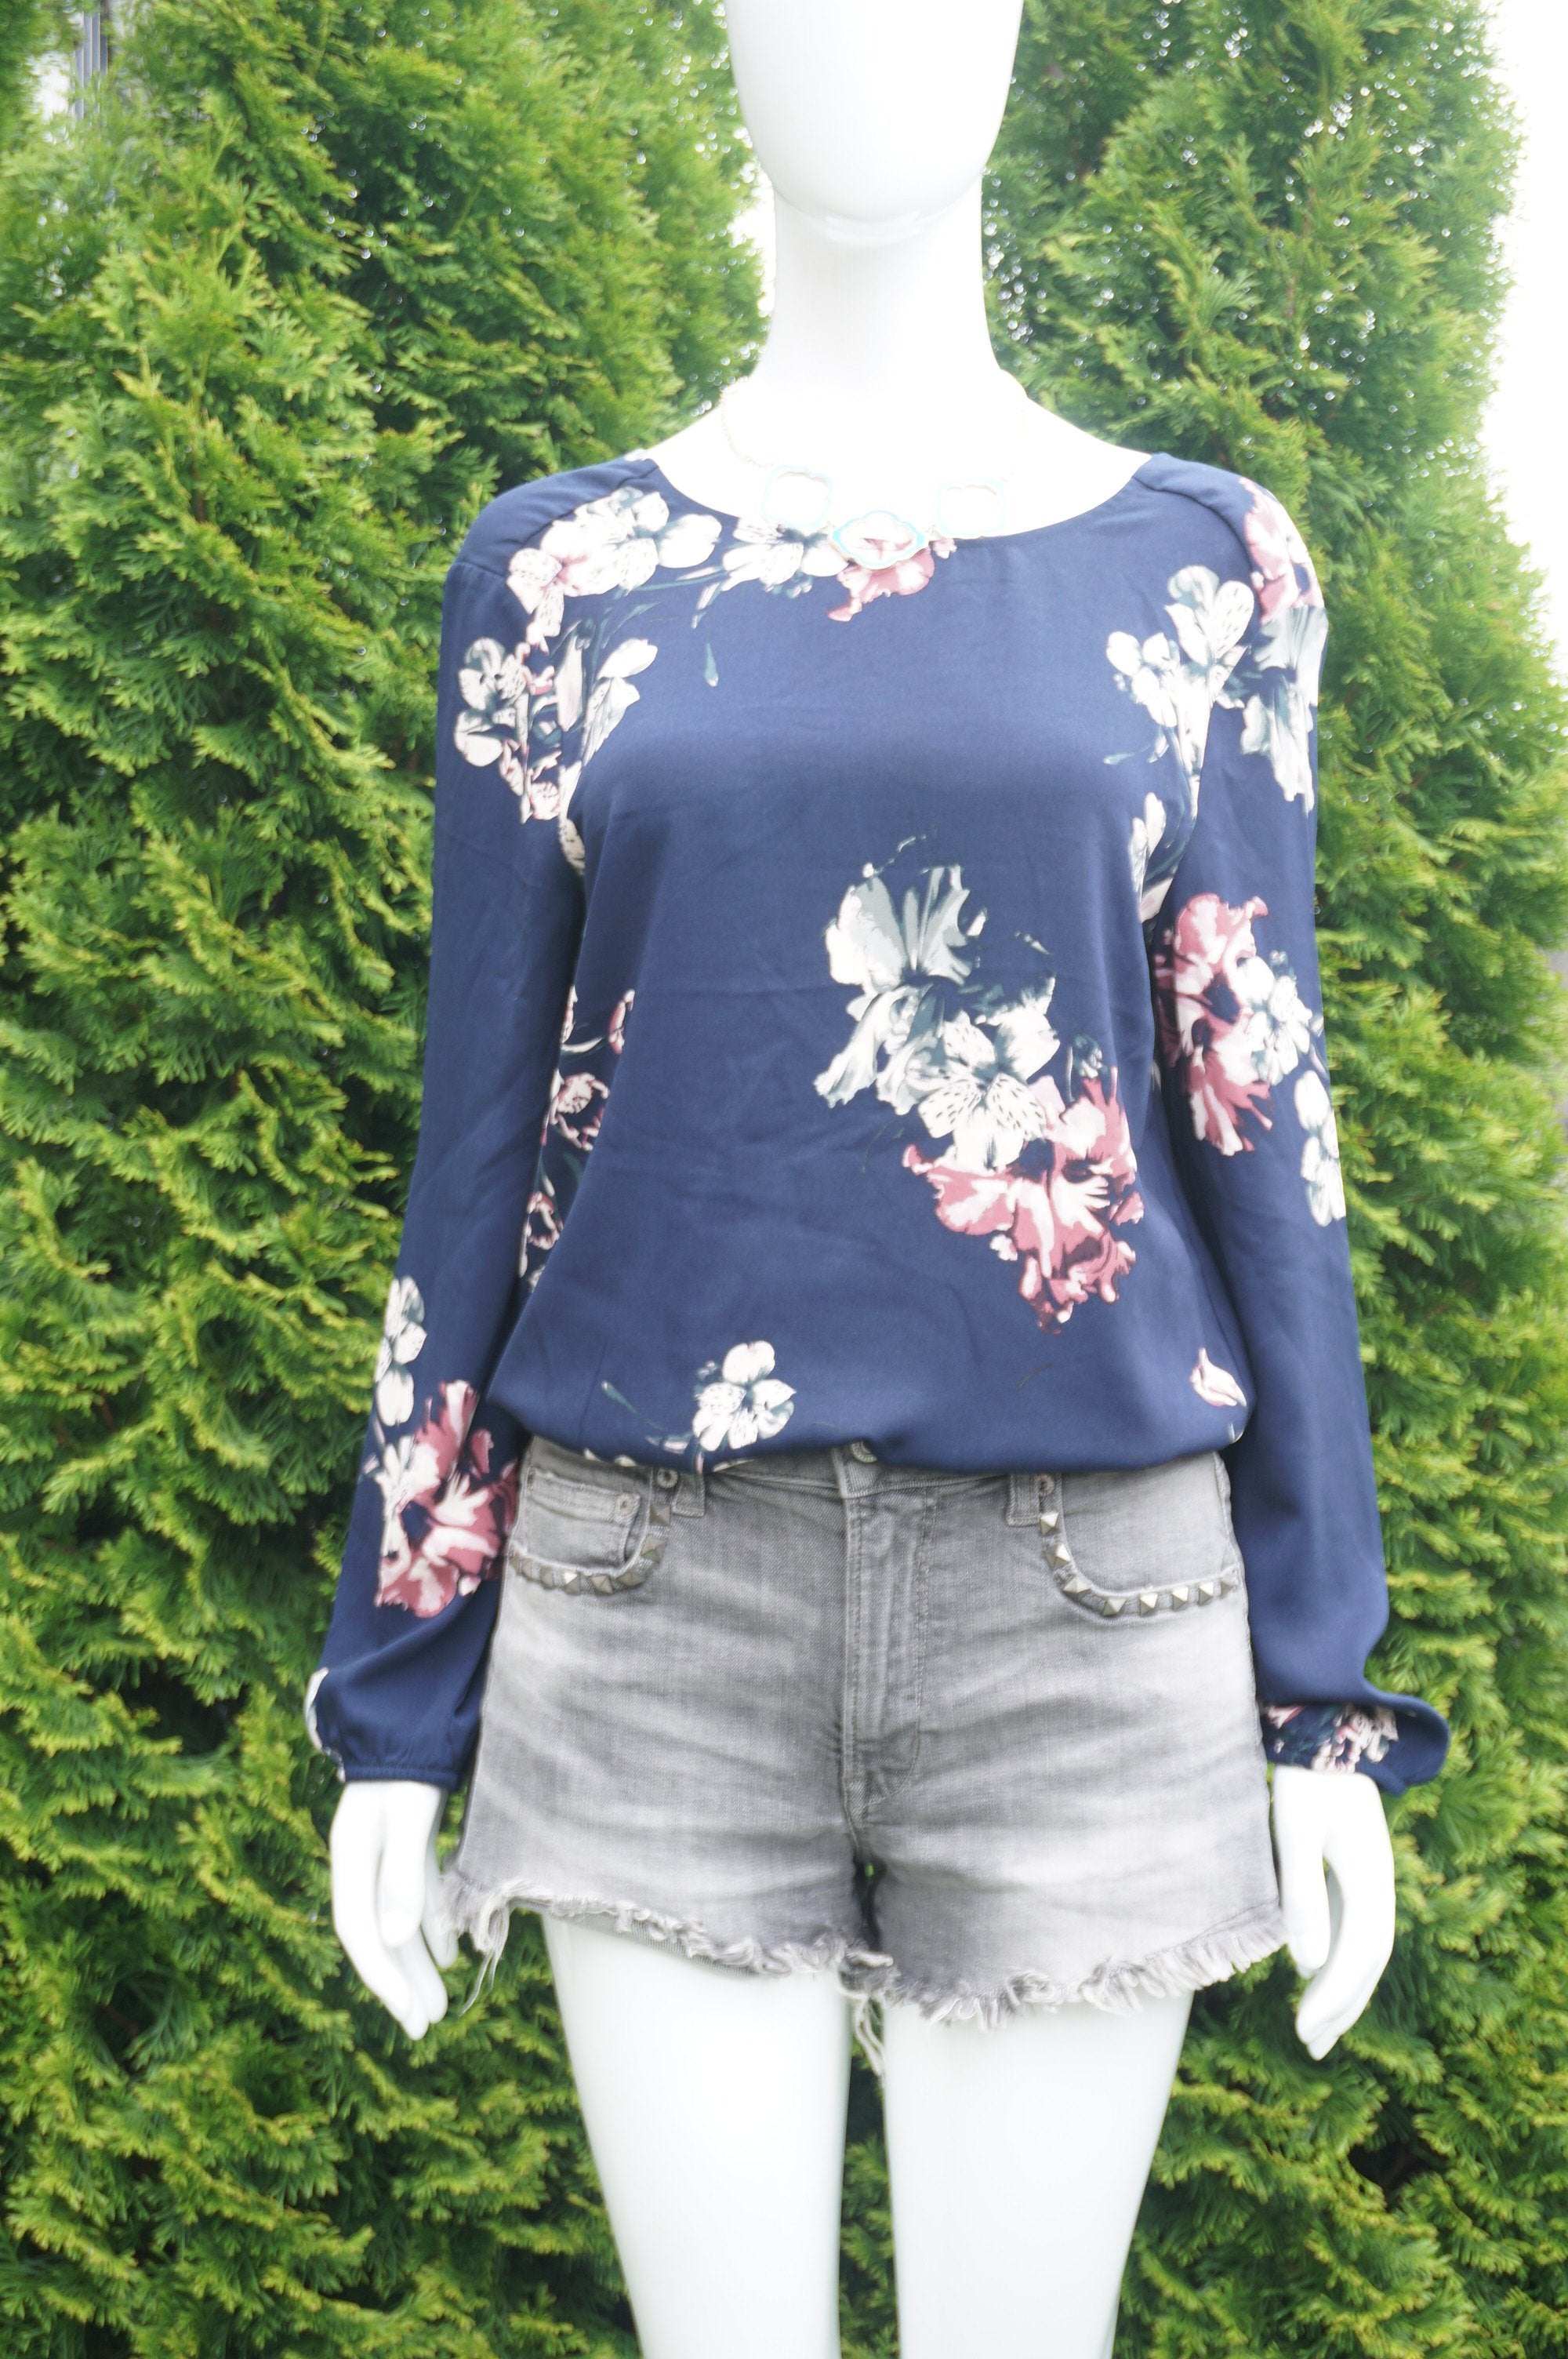 Dynamite Long Sleeve Blue Floral Wrap Back top, Cute floral prints plus a sexy wrap back look for your perfect summer outing., Blue, 100% Polyester, women's Tops, women's Blue Tops, Dynamite women's Tops, wrap back blouse, dark blue top, long sleeve top, long sleeve blouse, open back top, open back blouse